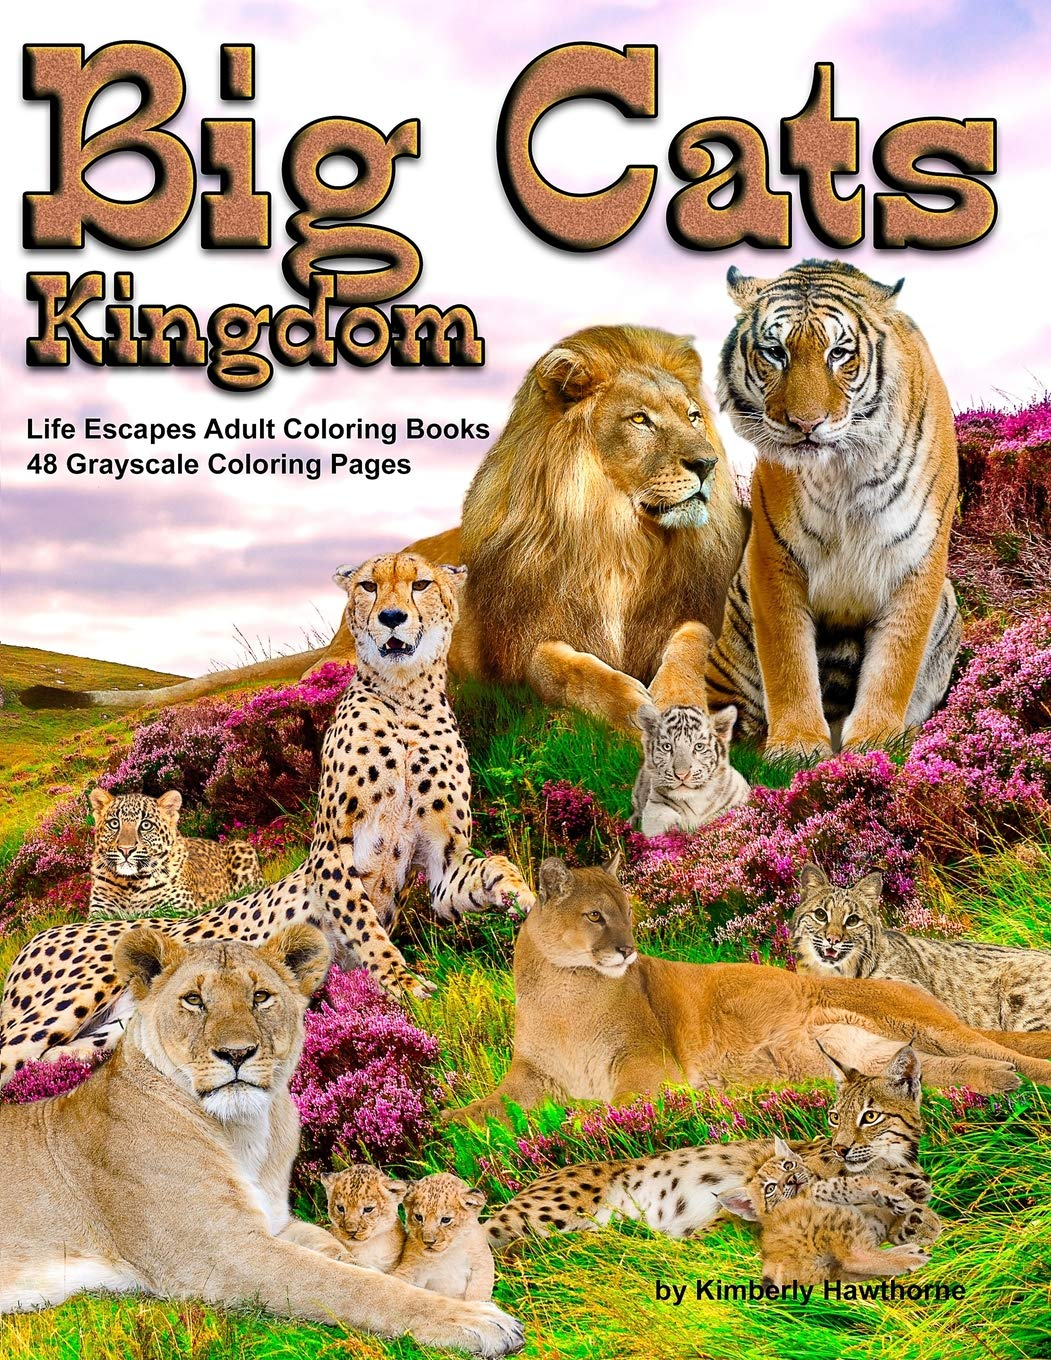 Big Cats Kingdom Life Escapes Adult Coloring Book 48 Grayscale Coloring Pages Of Big Wild Cats Like Lions Tigers Cougars Leopards Cheetahs And Endangered Cats Like The Caracal Ocelot Cat And More